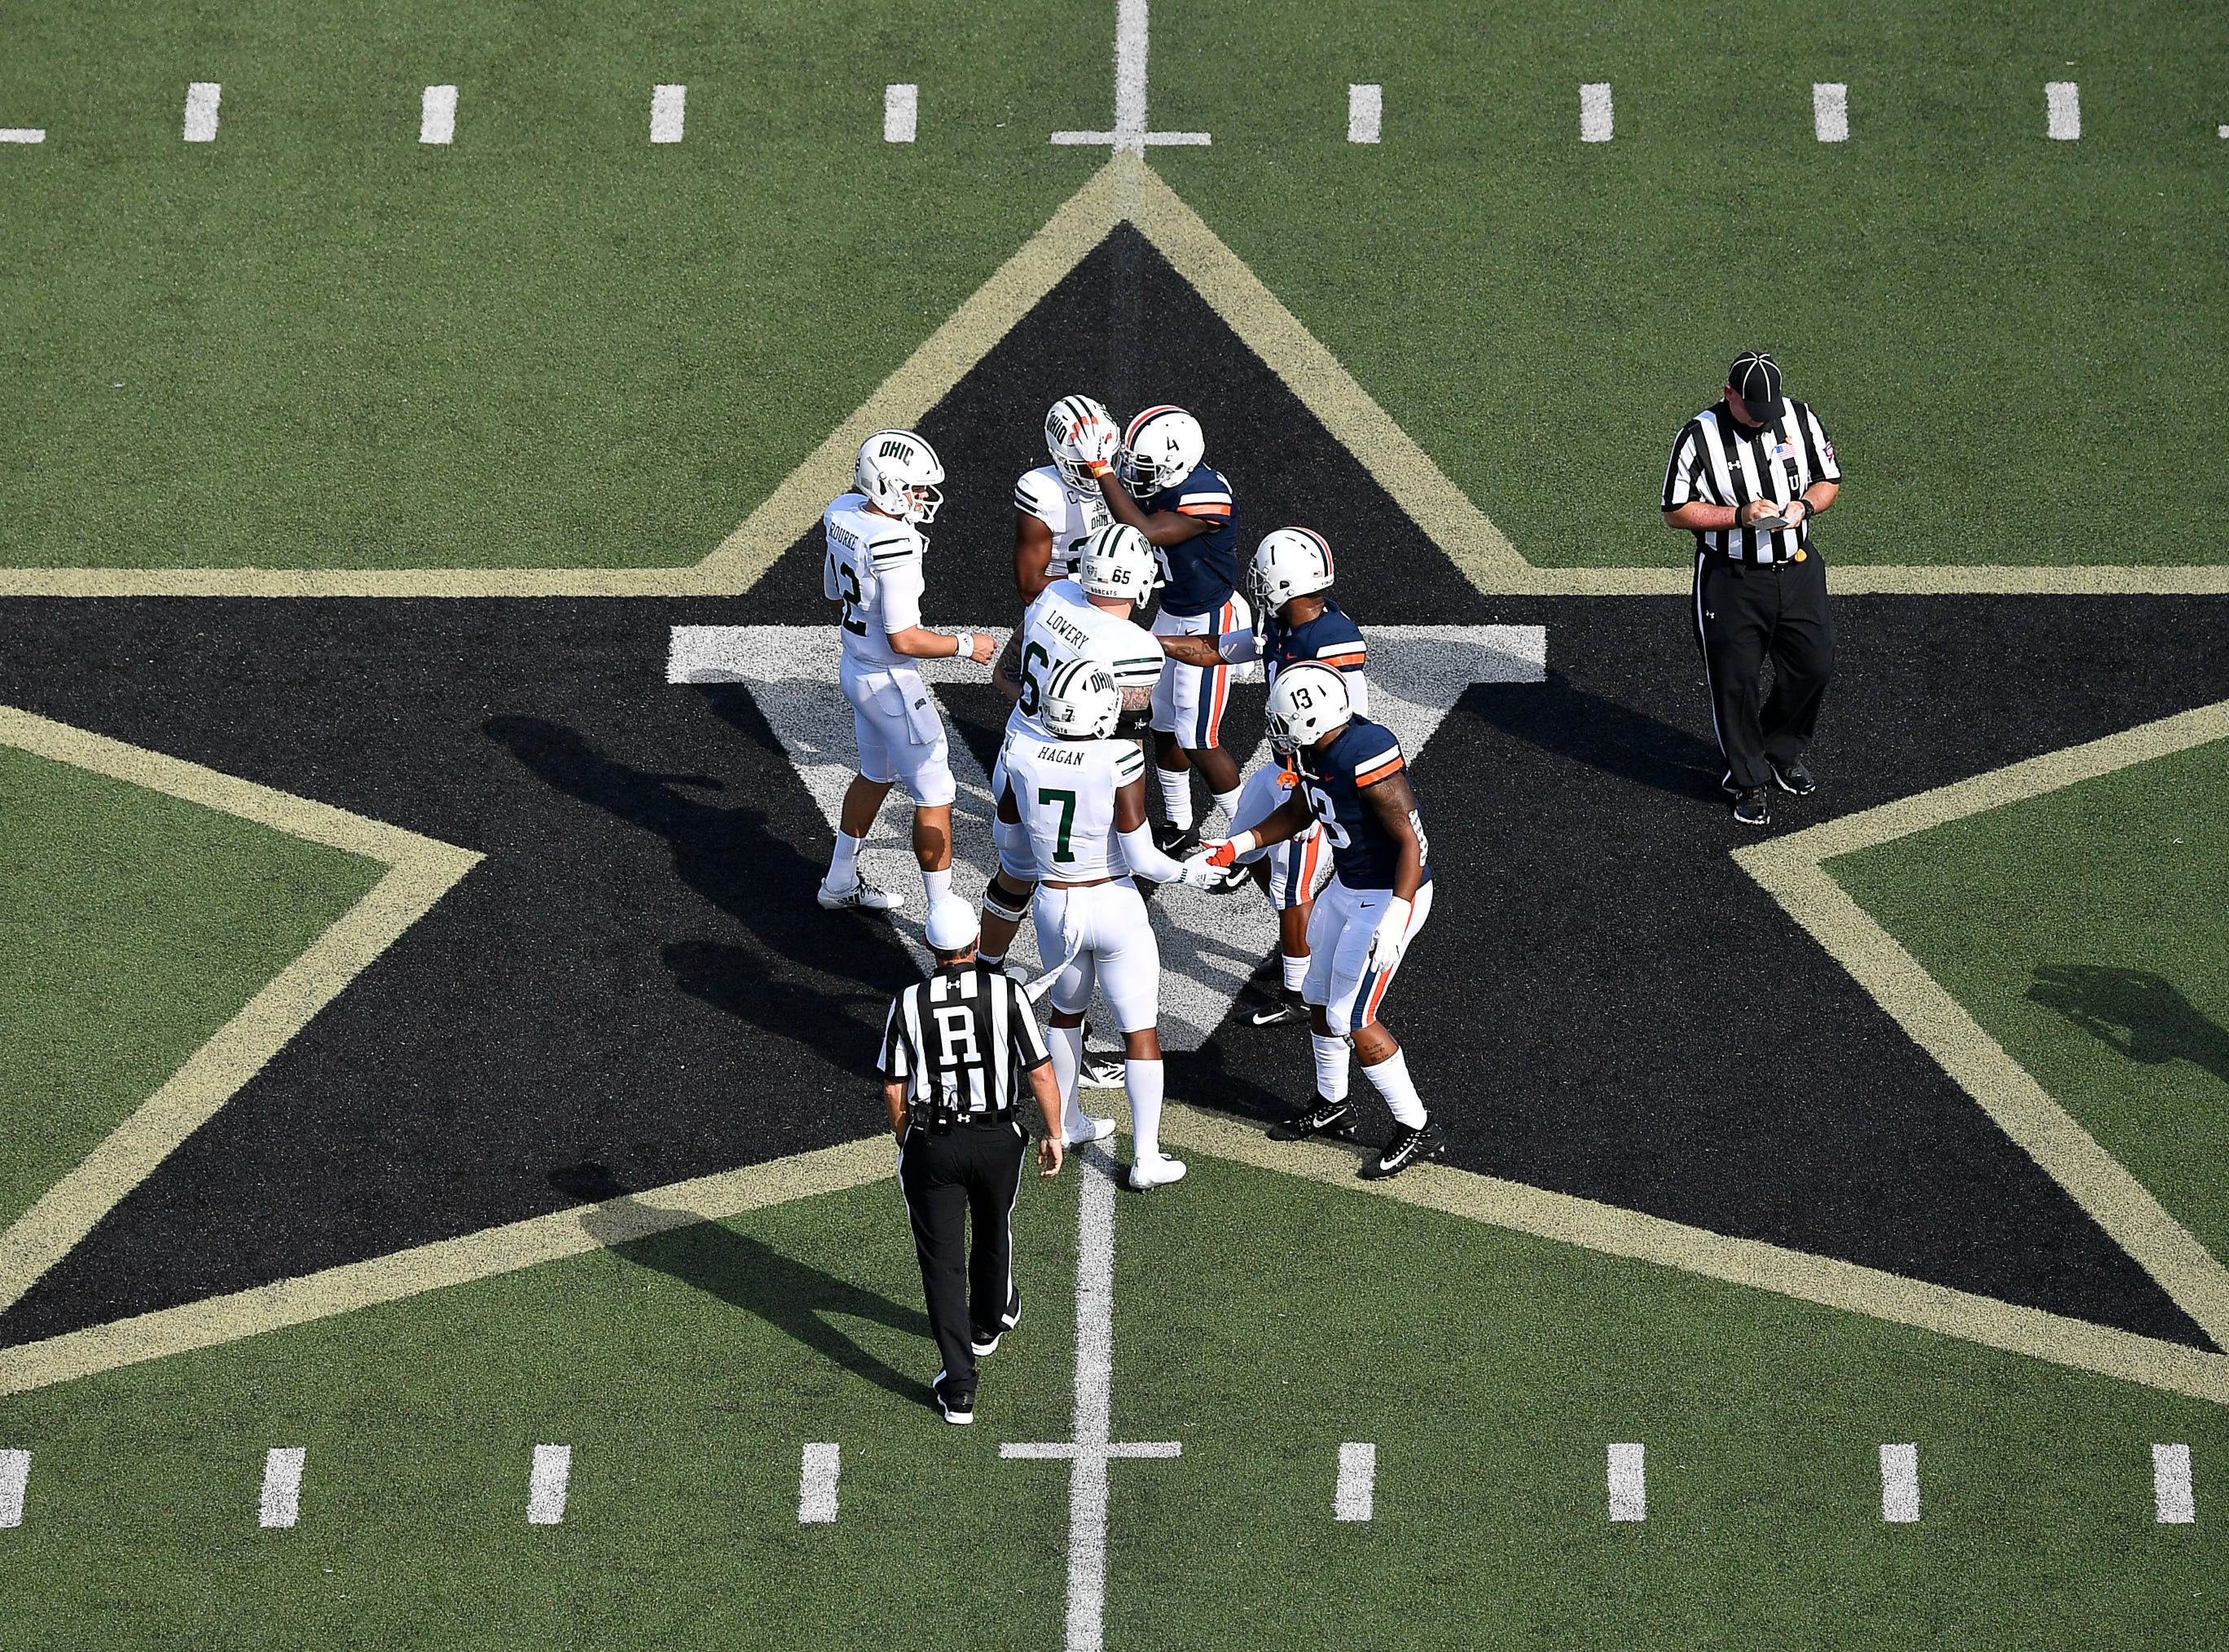 Virginia and Ohio players shake hands before there game at mid-field of Vanderbilt Stadium Saturday, Sept. 15, 2018, in Nashville, Tenn. Their football game was moved from Virginia to Tennessee to avoid the effects of Hurricane Florence.